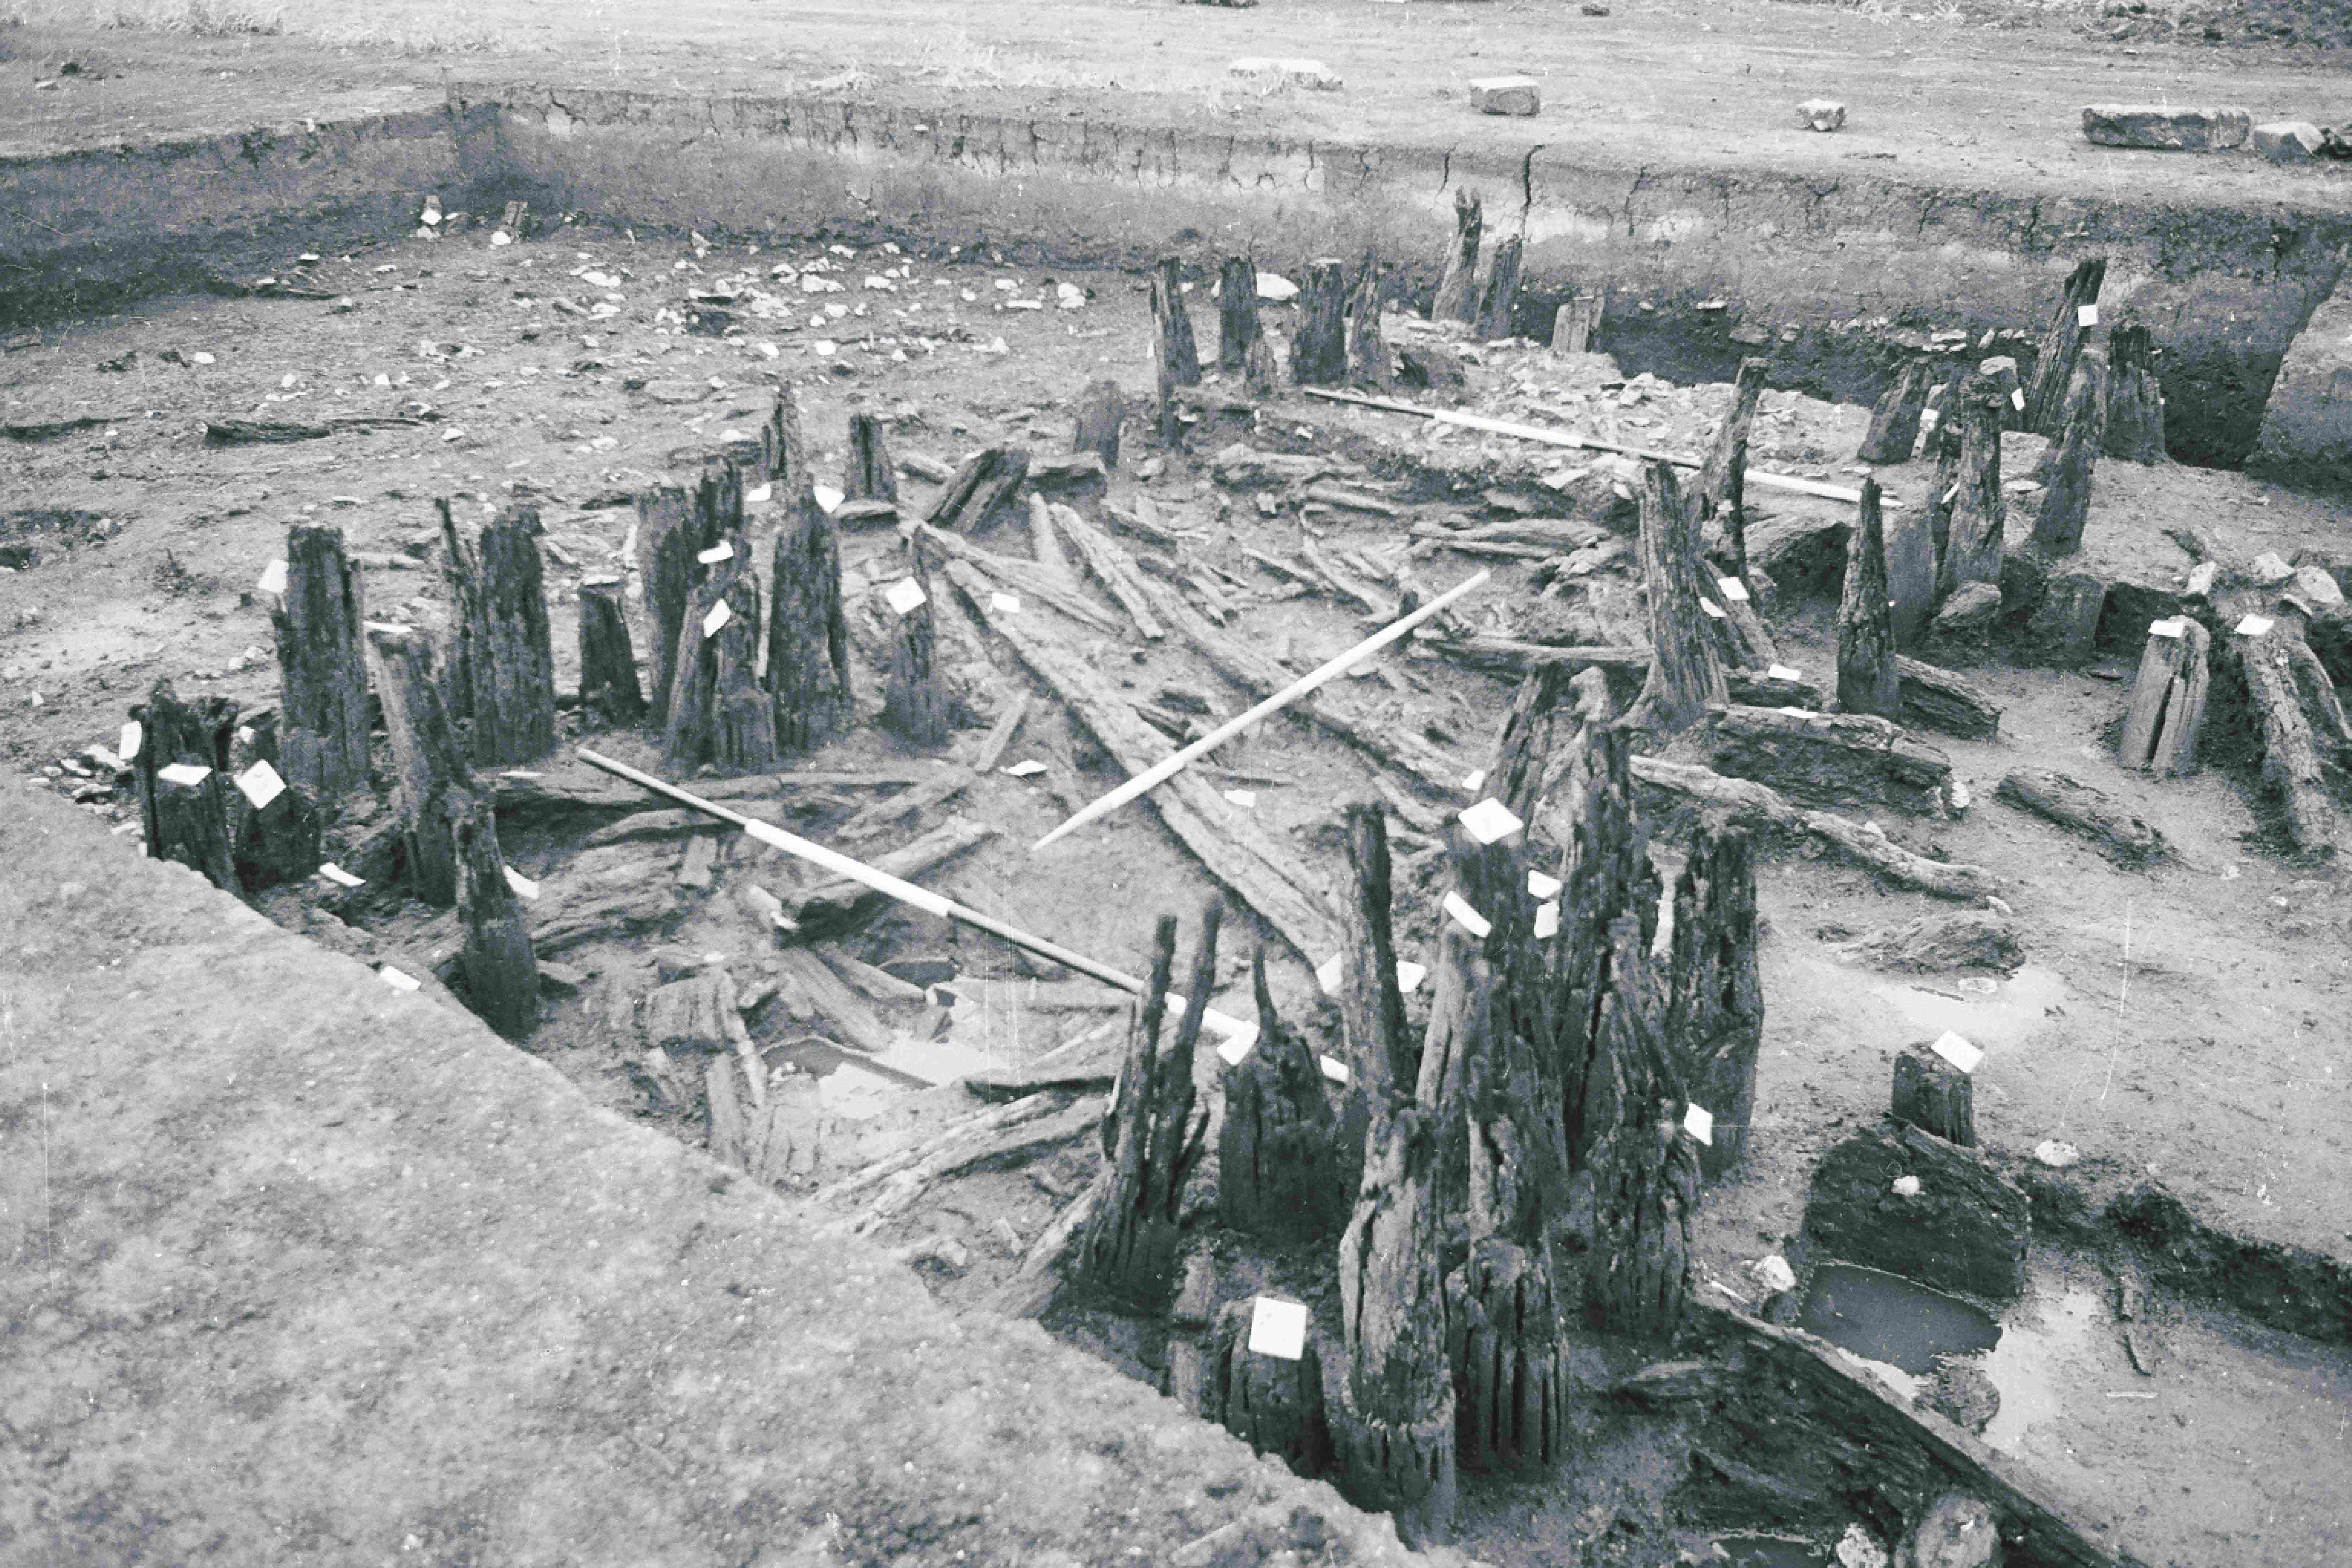 A black and white photograph of a large archaeological excavation showing a clearly defined wooden structures extending across the trench. Wooden uprights extend in two parallel rows, with extensive wooden debris between them.